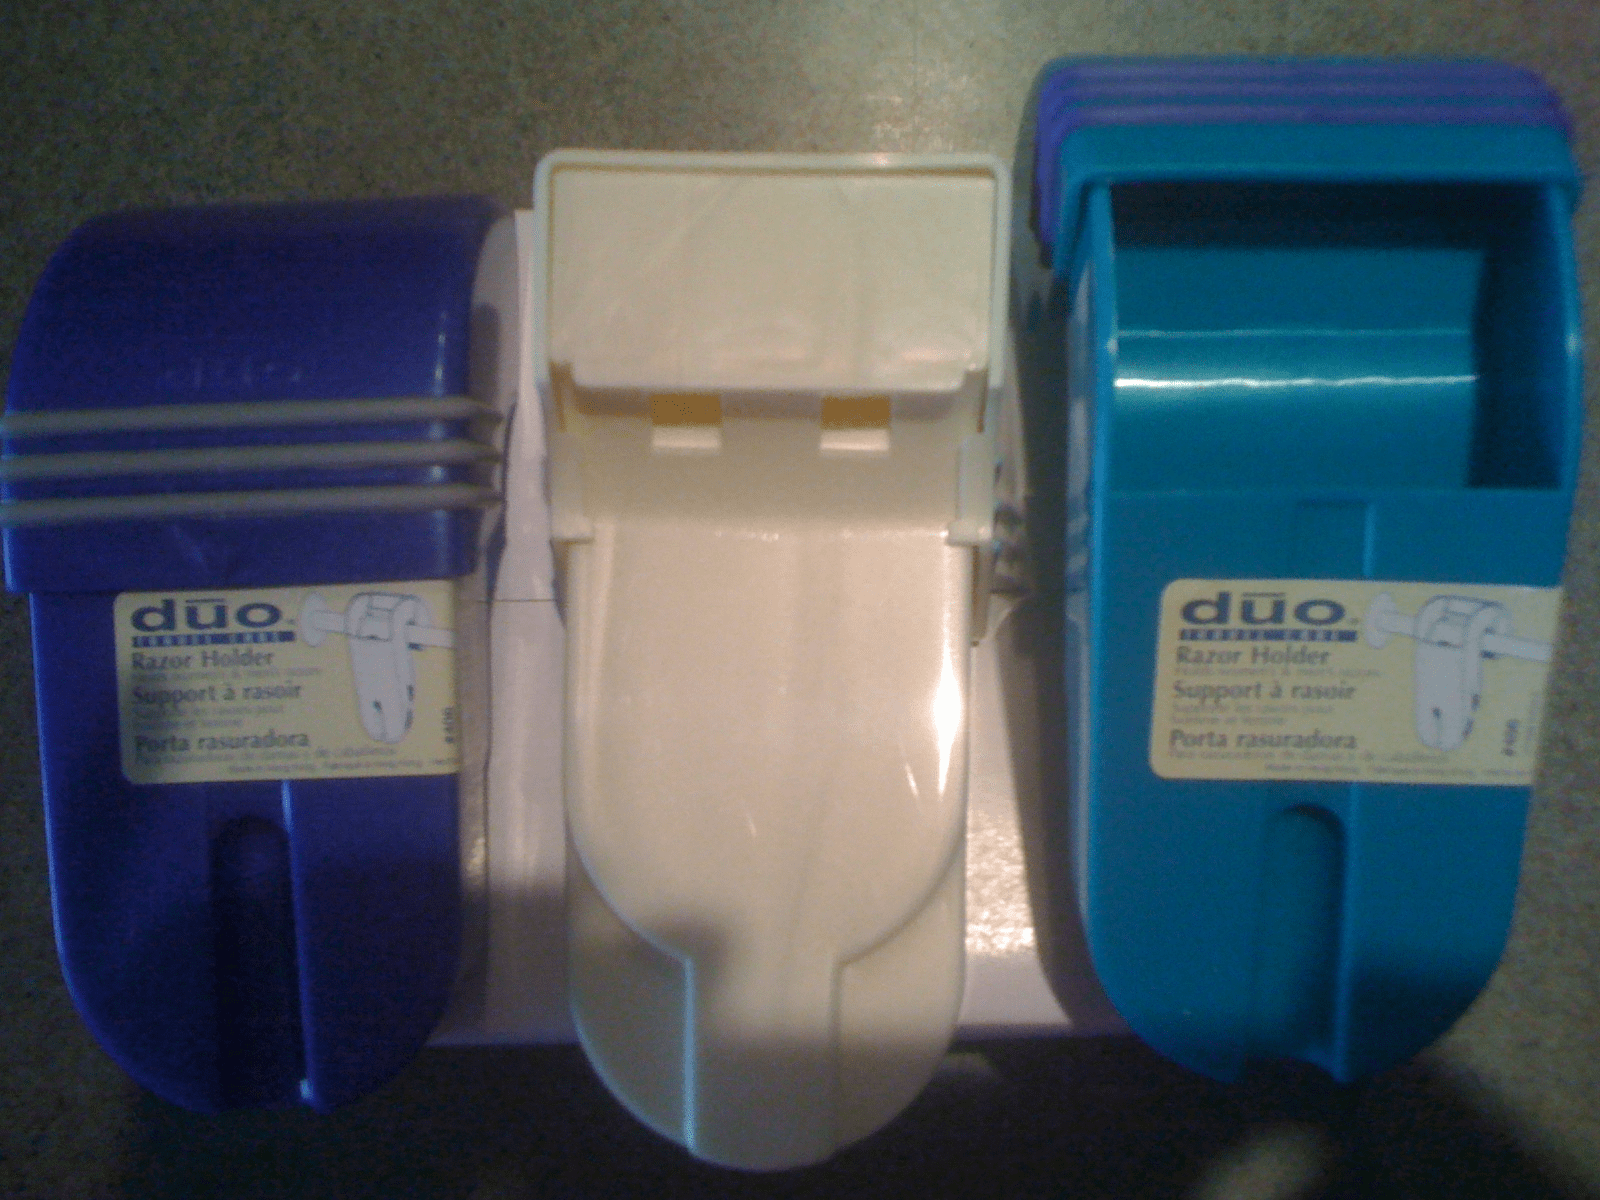 Duo Razor Case - Perfect for the Shower or for Travel